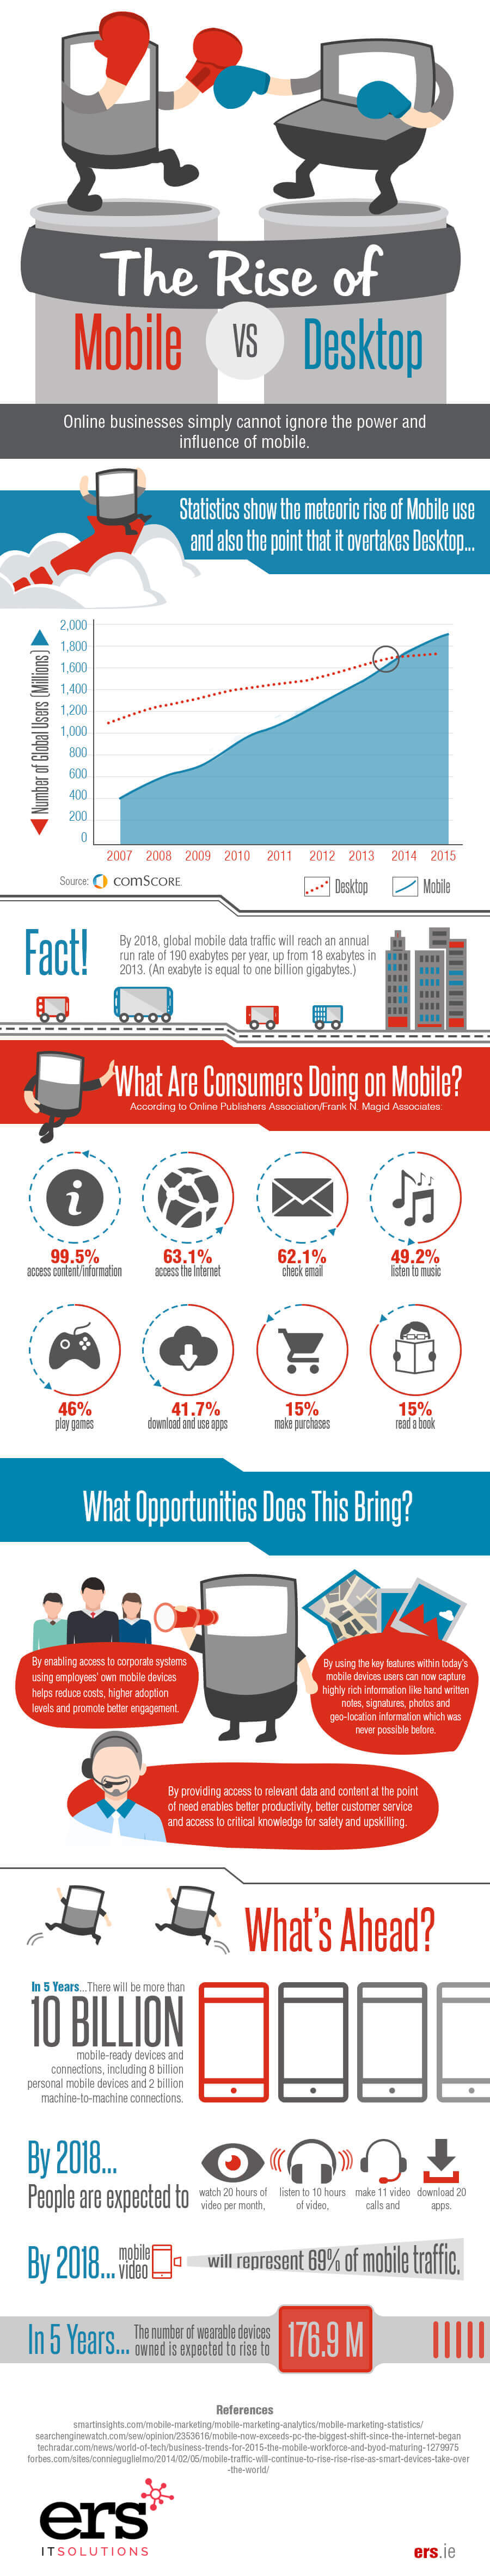 Mobile-vs-desktop-infographic copy